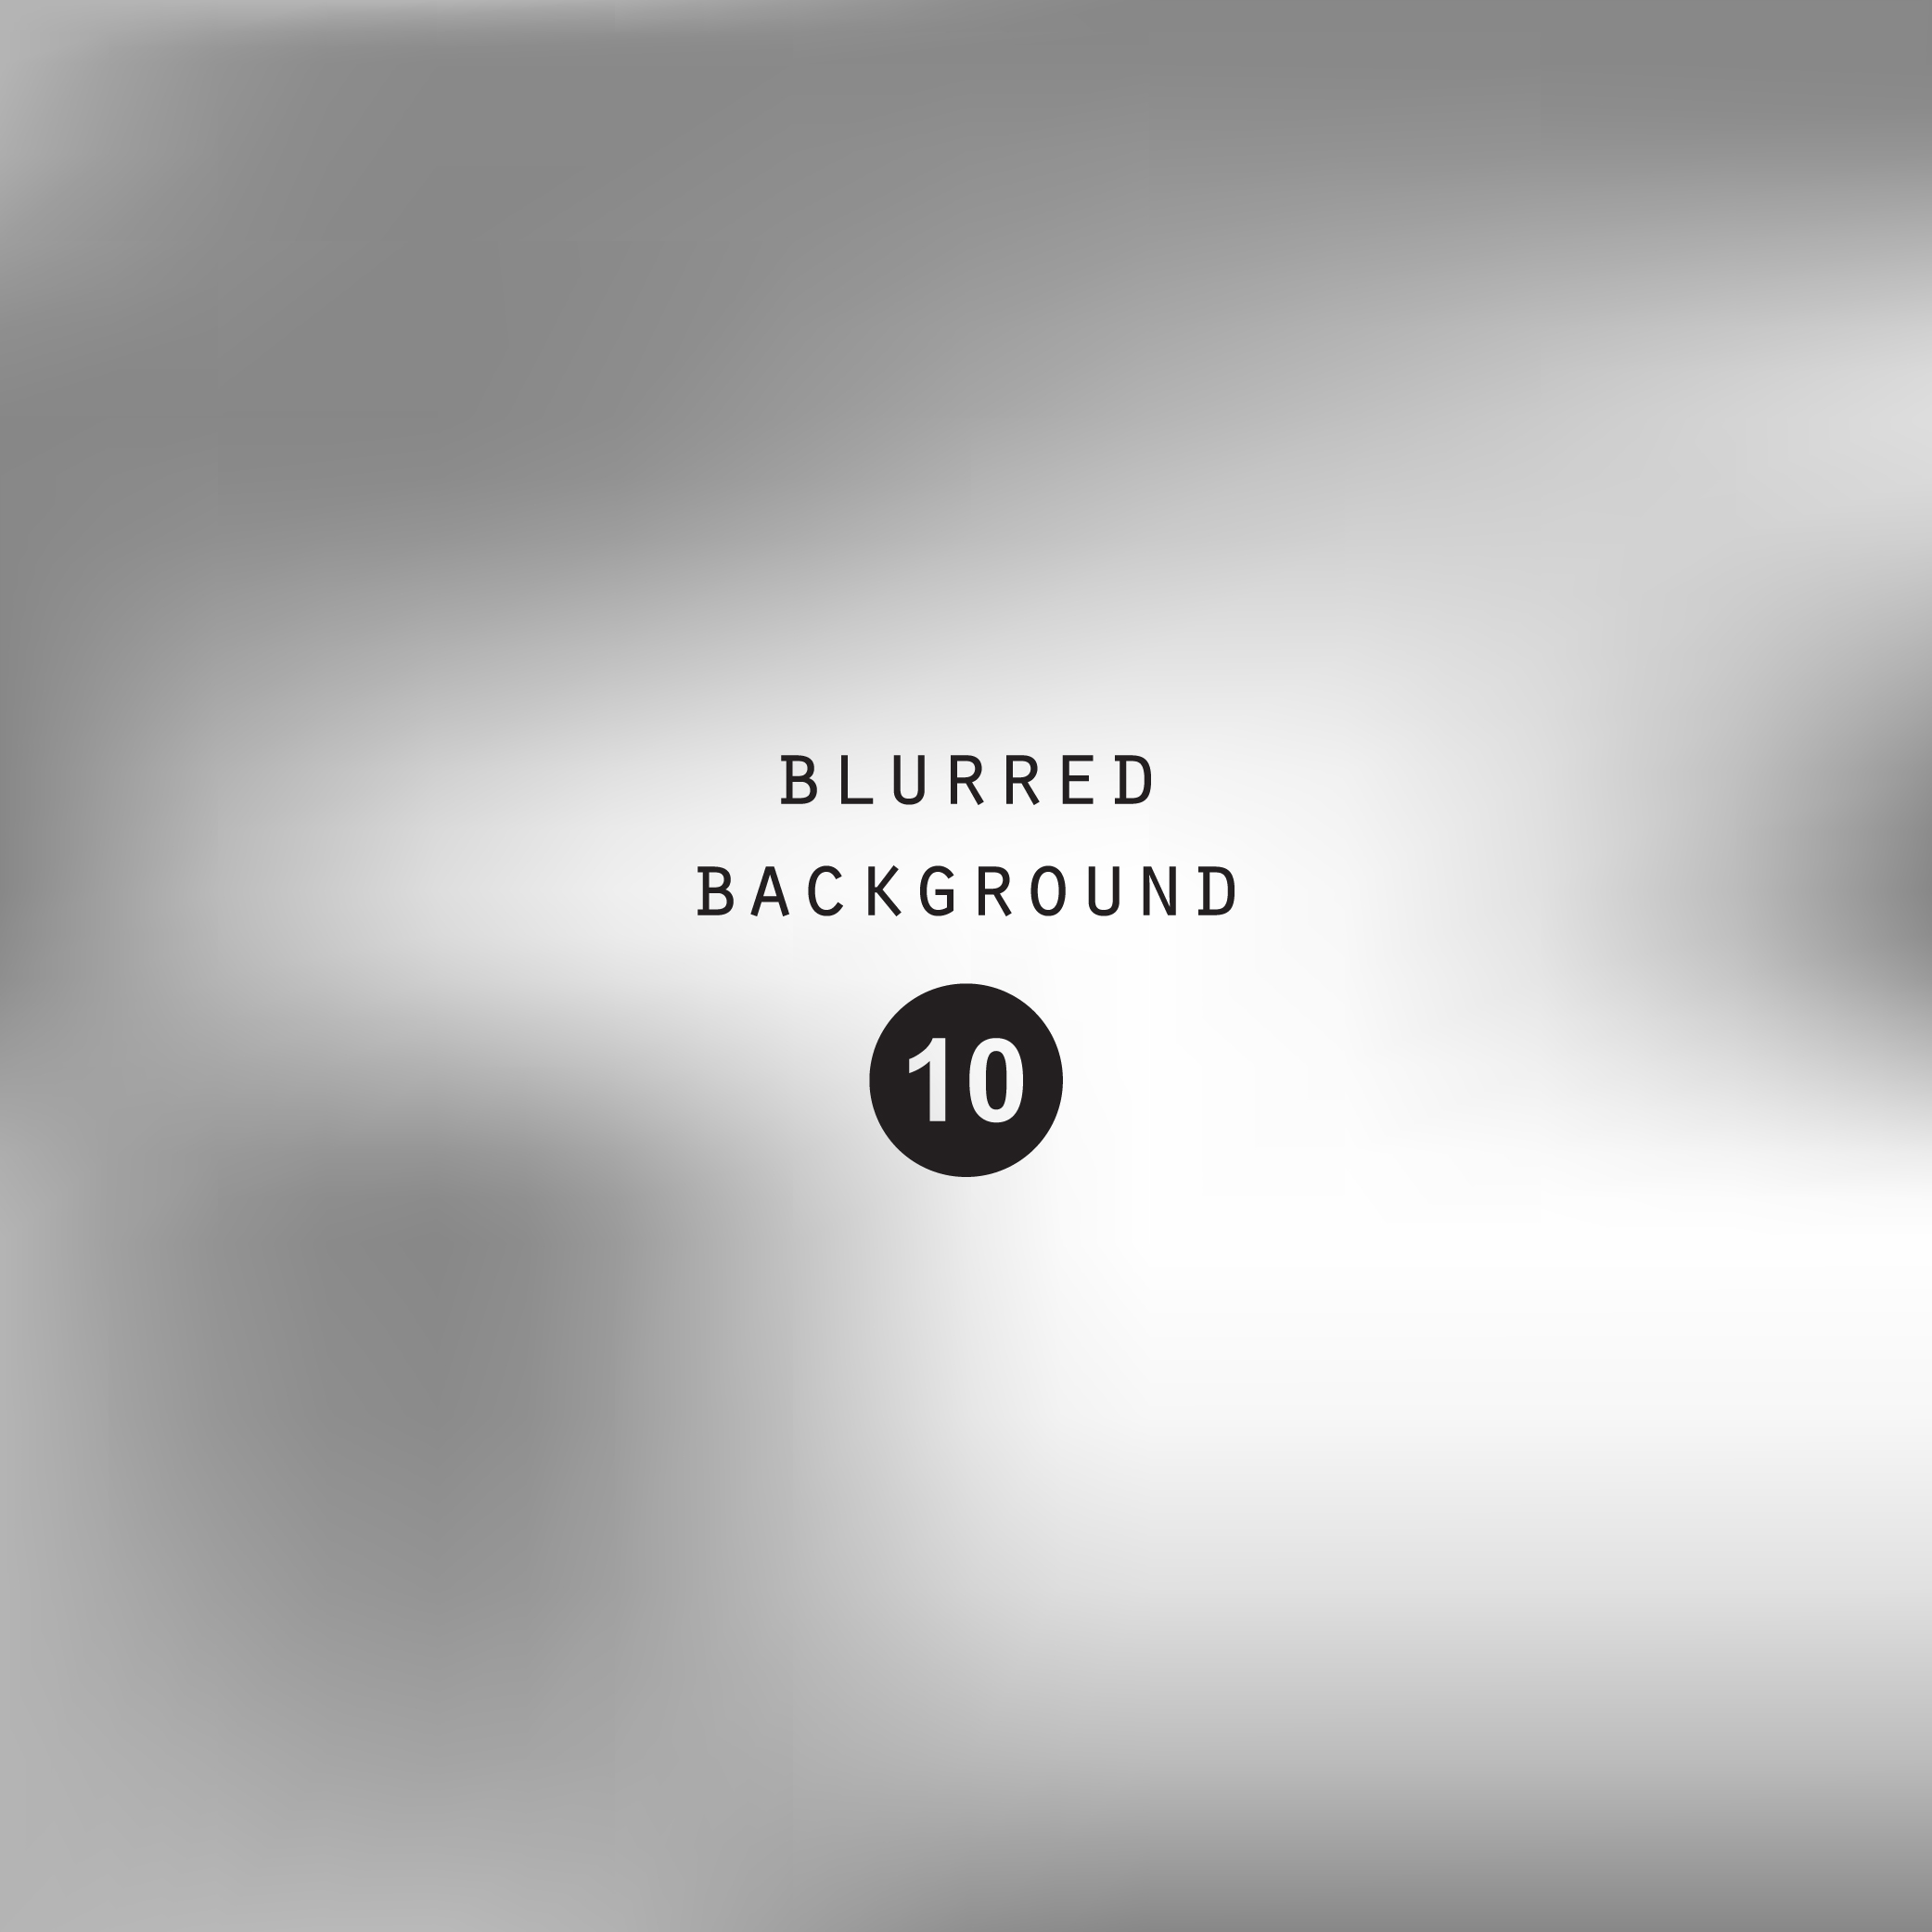 Blurred silver abstract gradient background example image 5